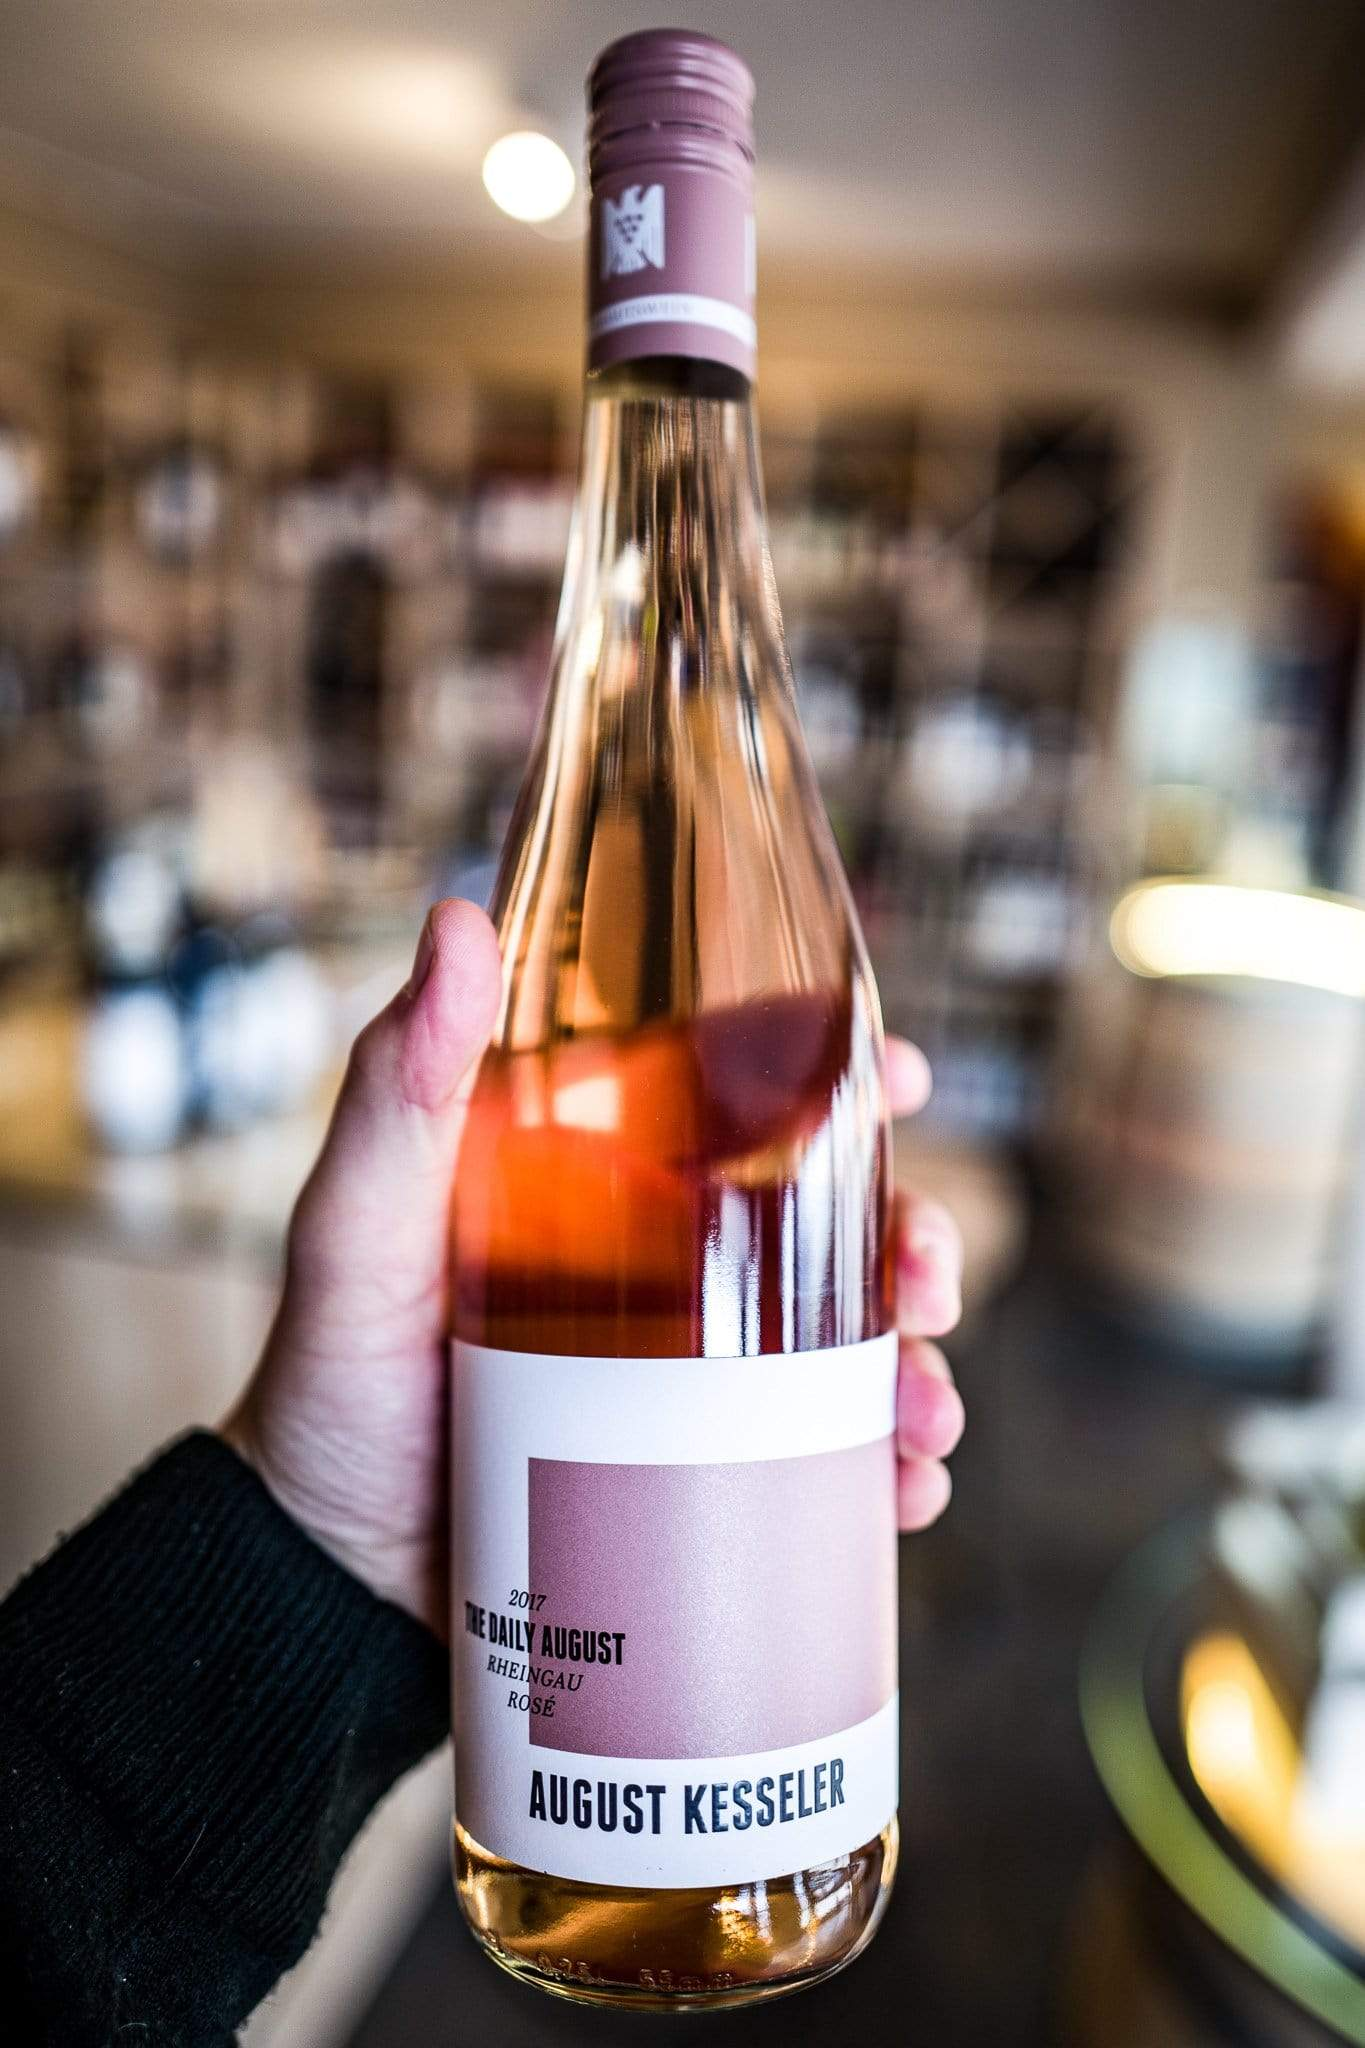 Image of   August Kesseler 2017 The Daily August Rosé Rheingau